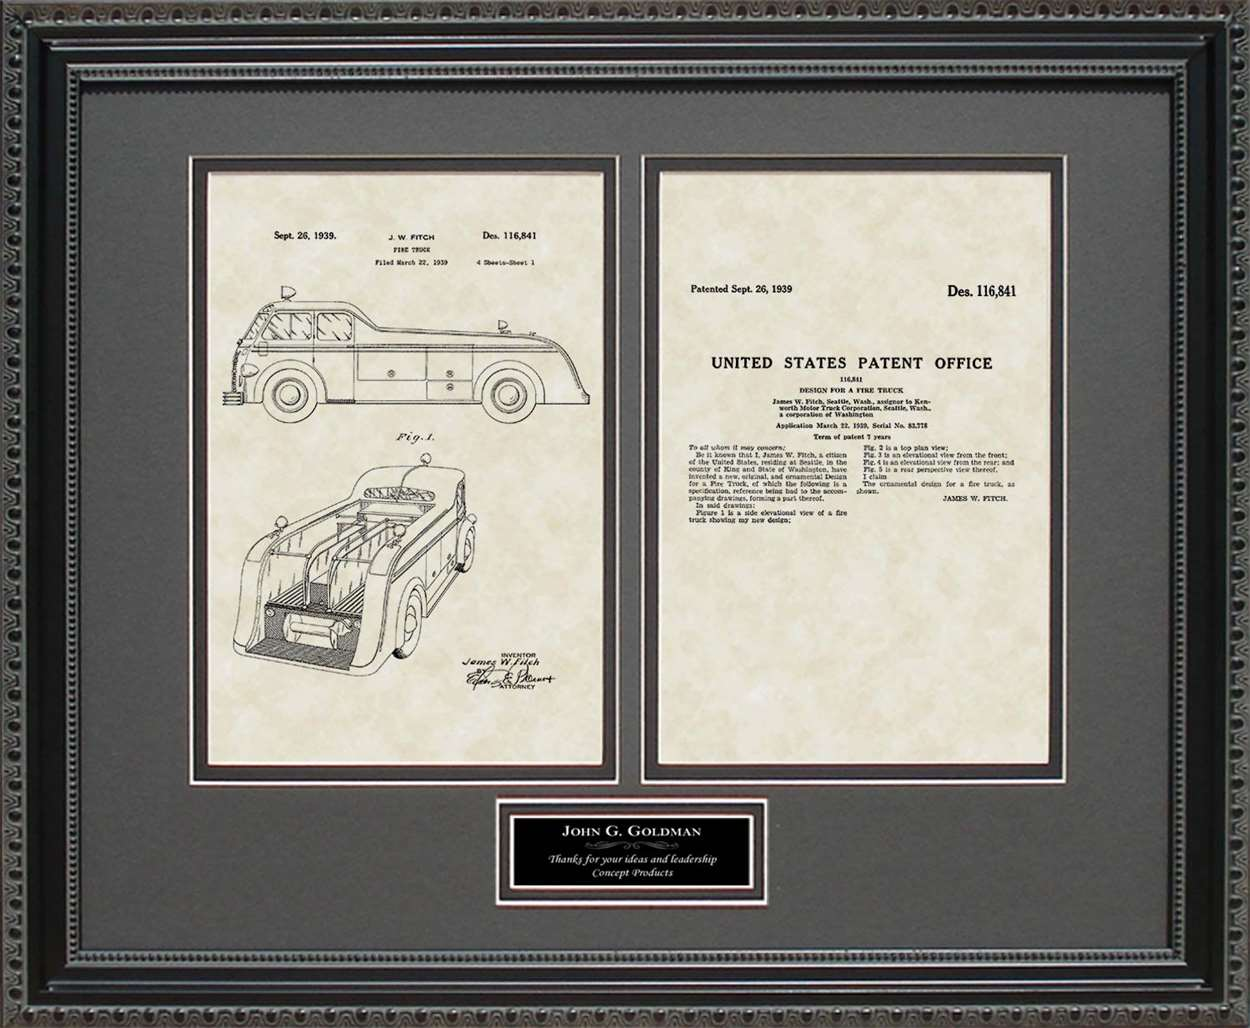 Personalized Fire Truck Patent, Art & Copy, Fitch, 1939